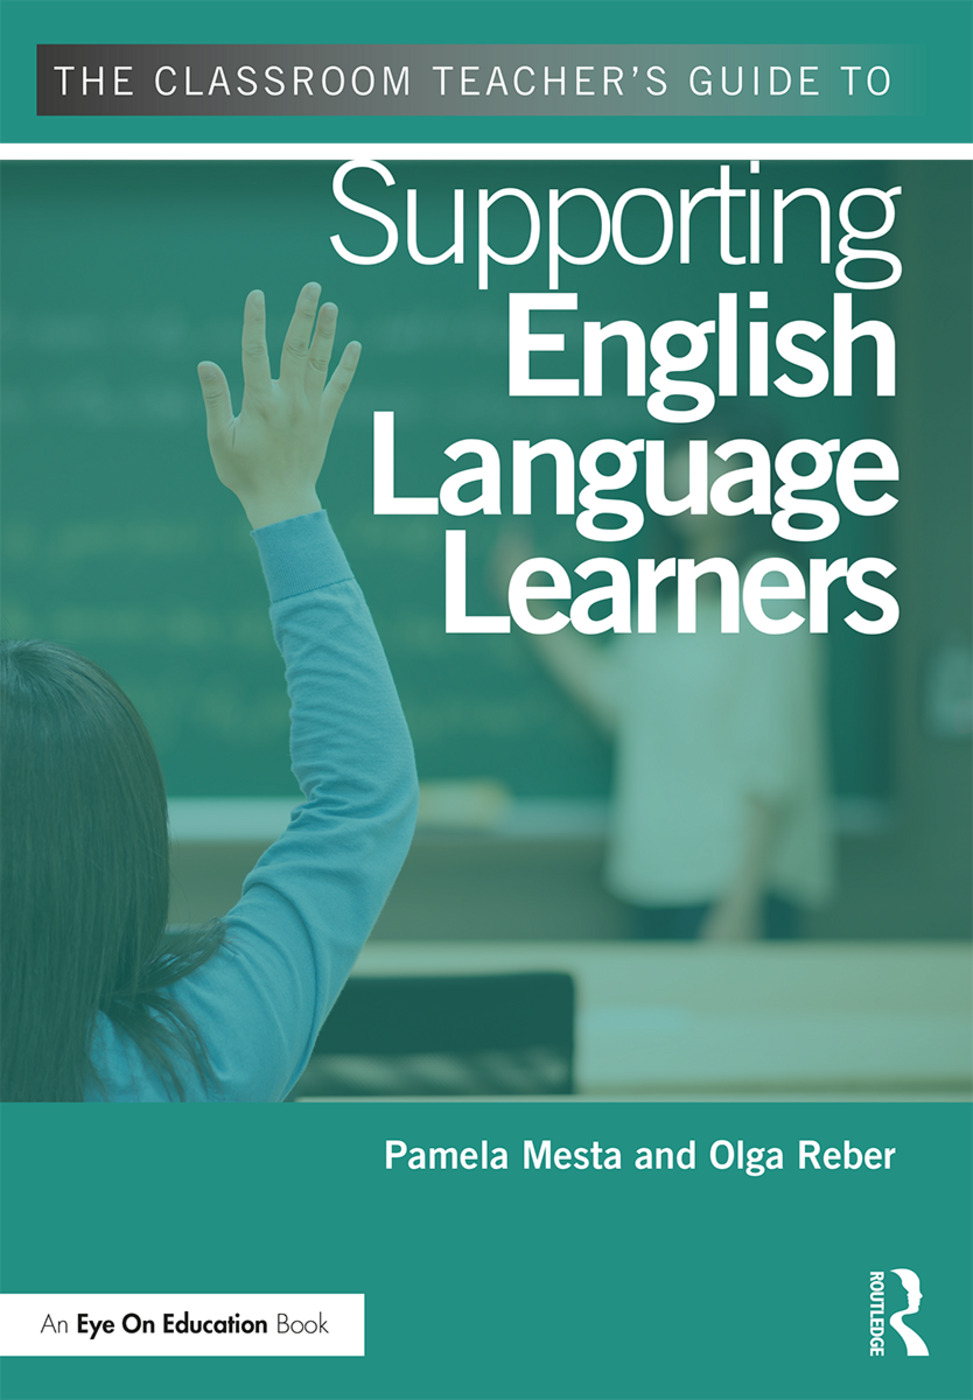 The Classroom Teacher's Guide to Supporting English Language Learners book cover